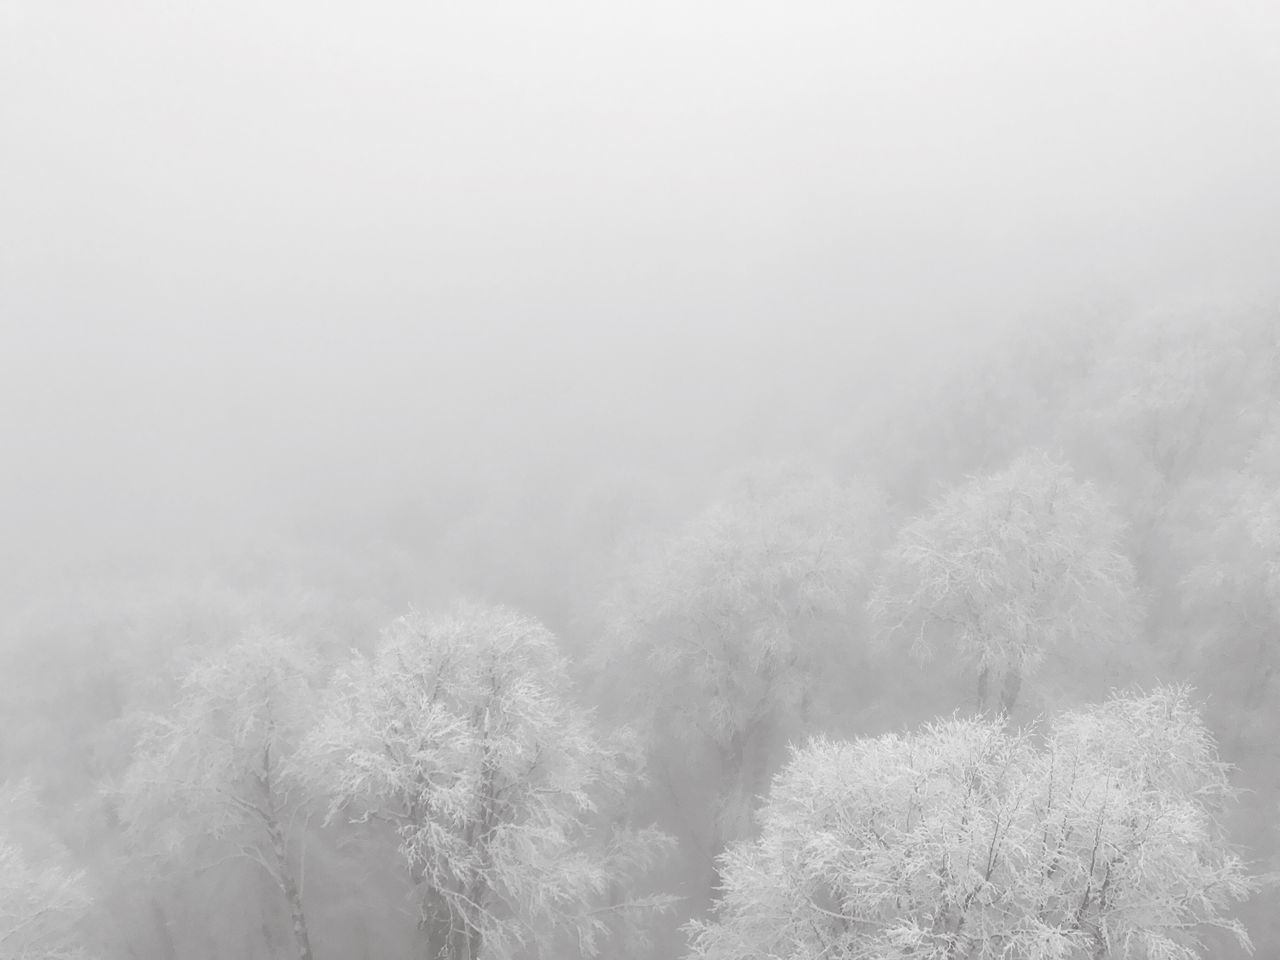 Flying High Weather Fog Treetop No People Tree Beauty In Nature Nature Sochi Krasnaya Polyana